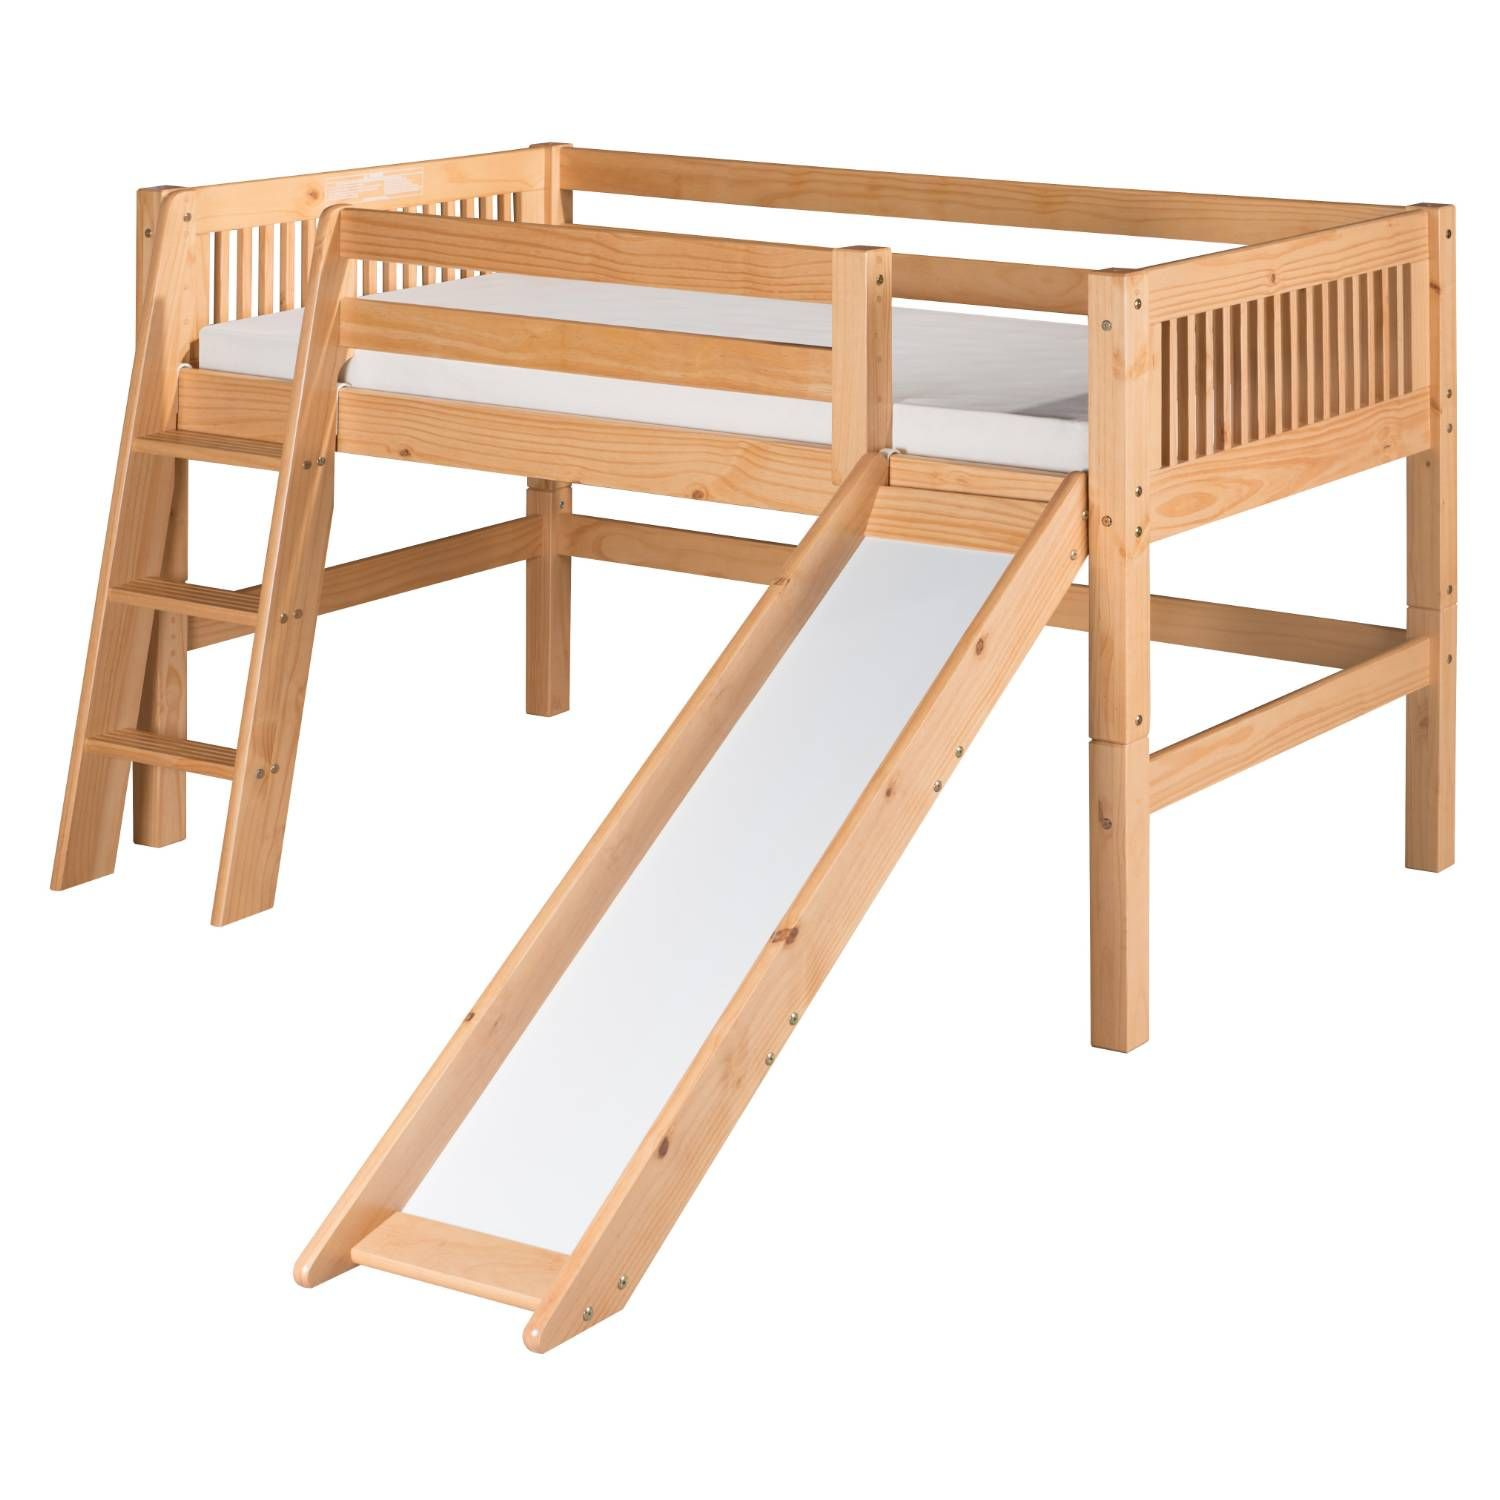 Camaflexi C51 Bed With Slide Low Loft Beds Small Spaces Bunk Bed